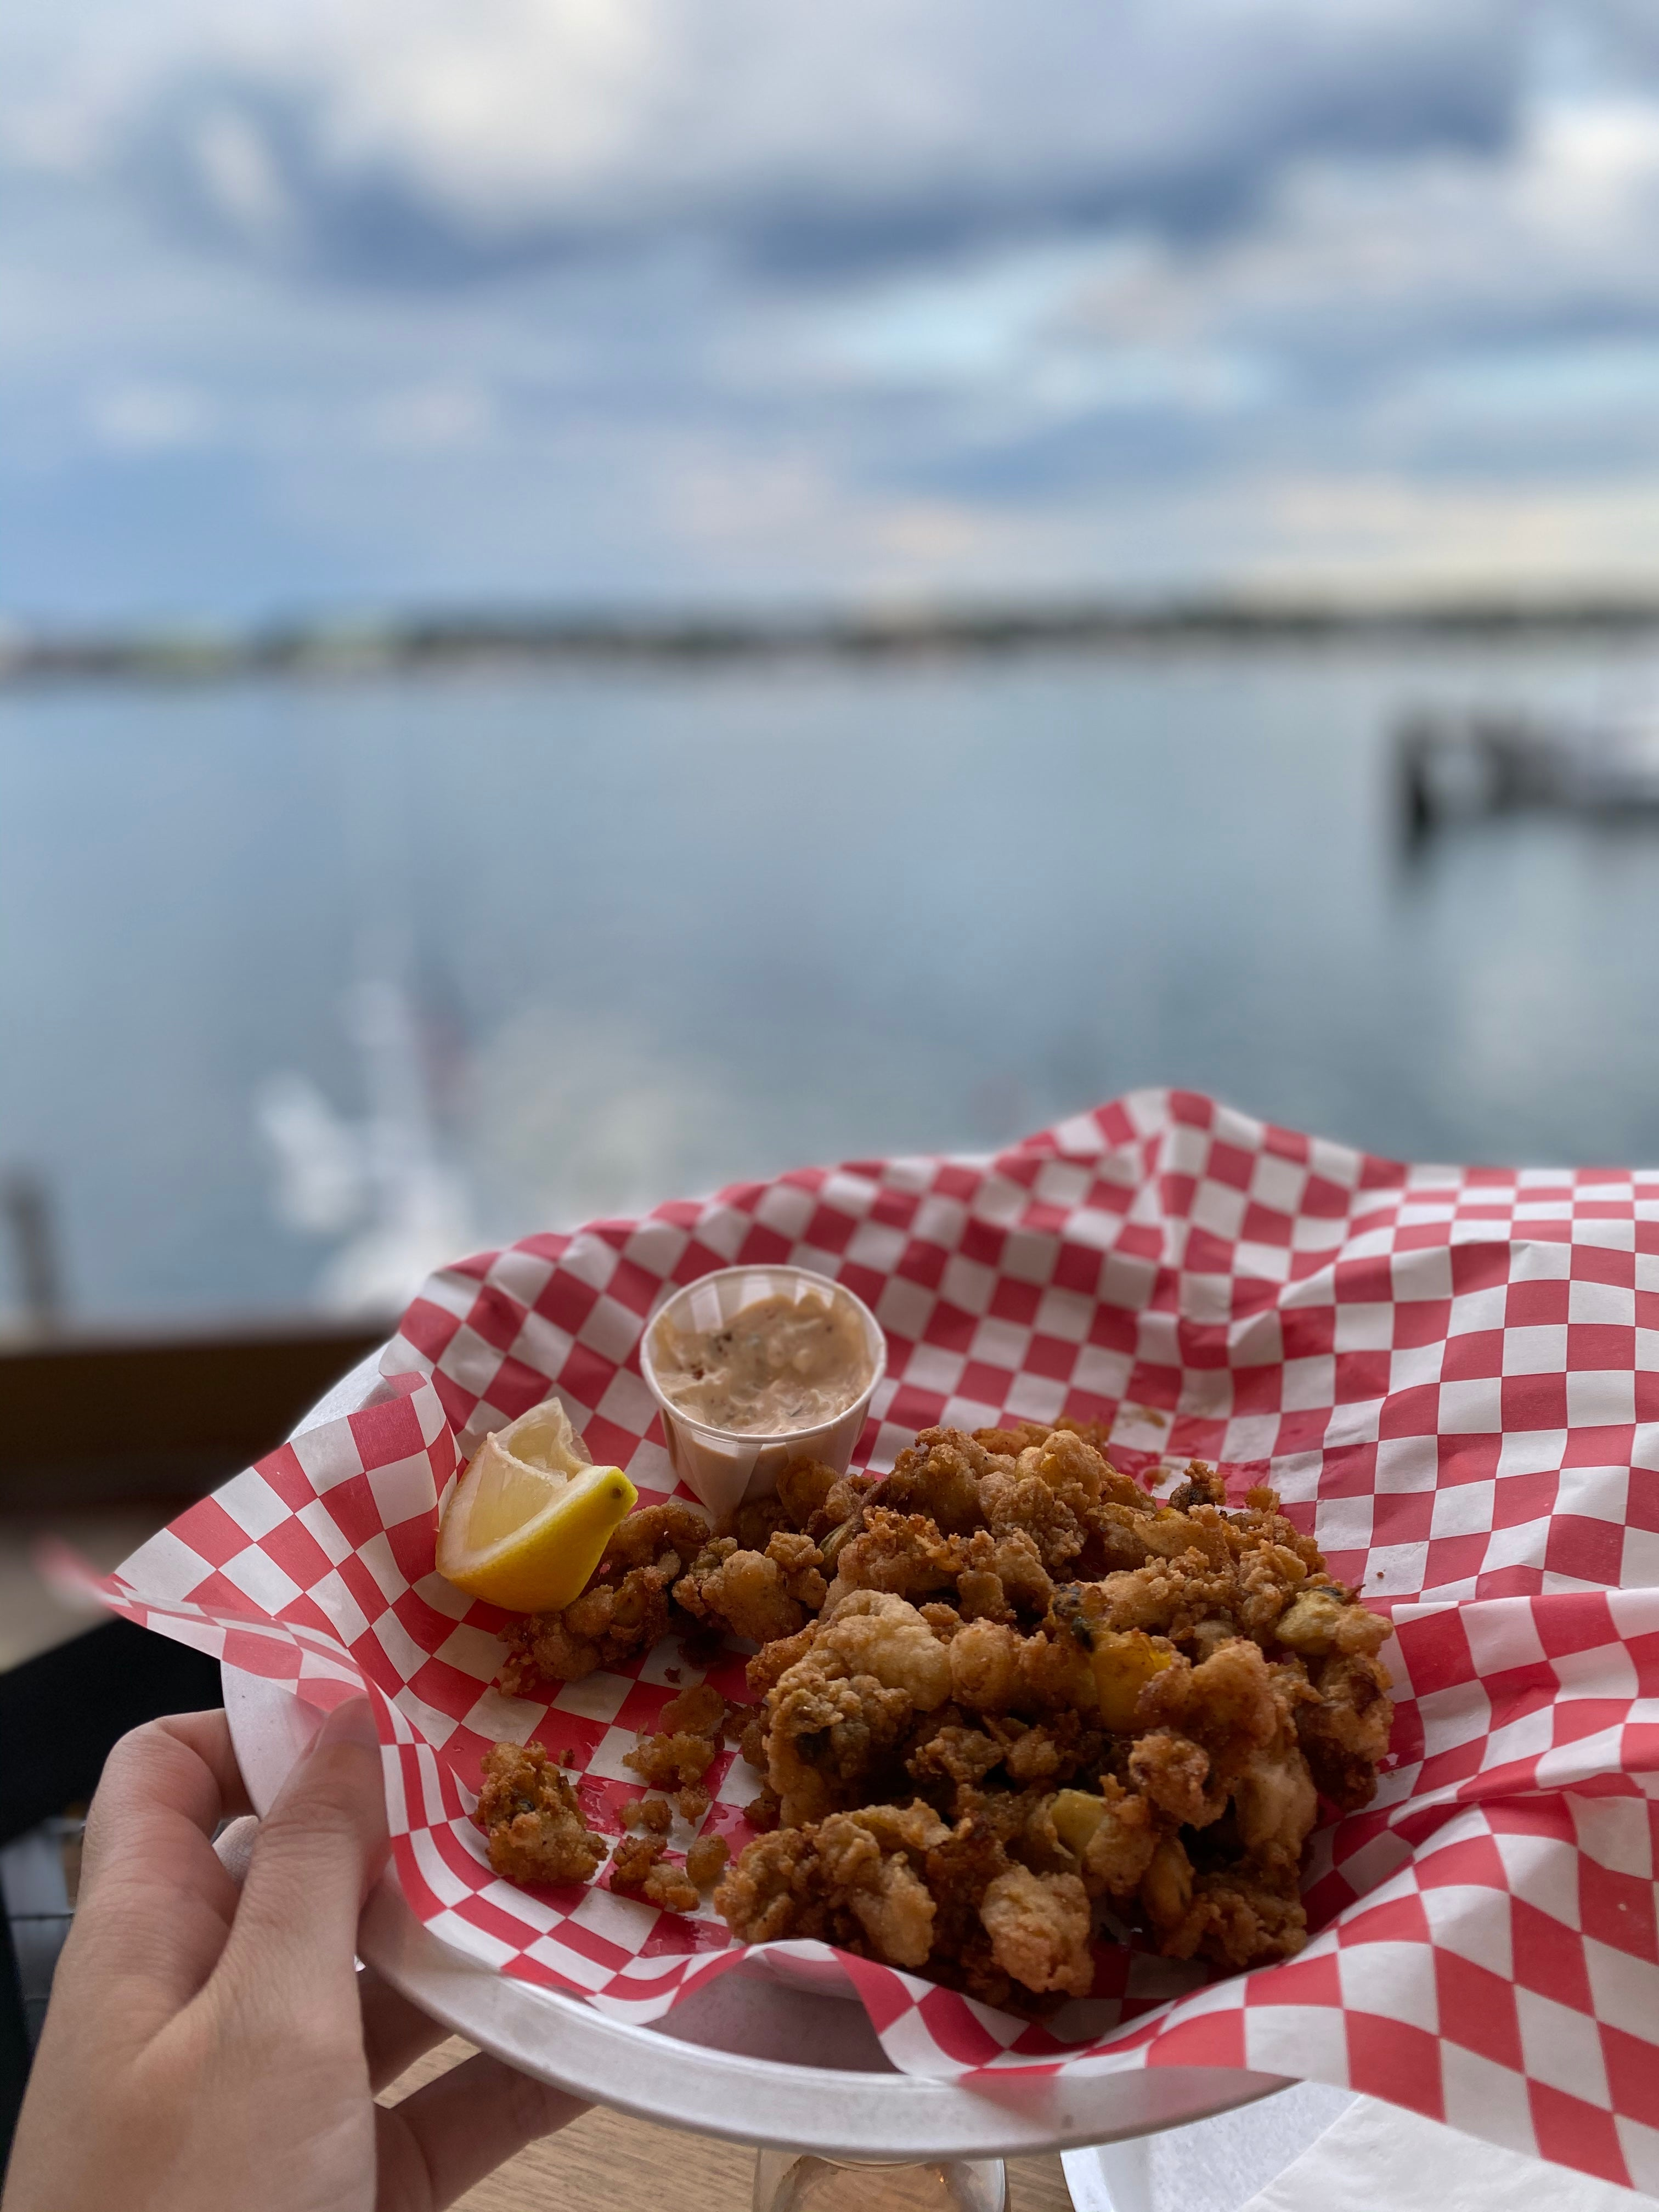 fried clams in a basket